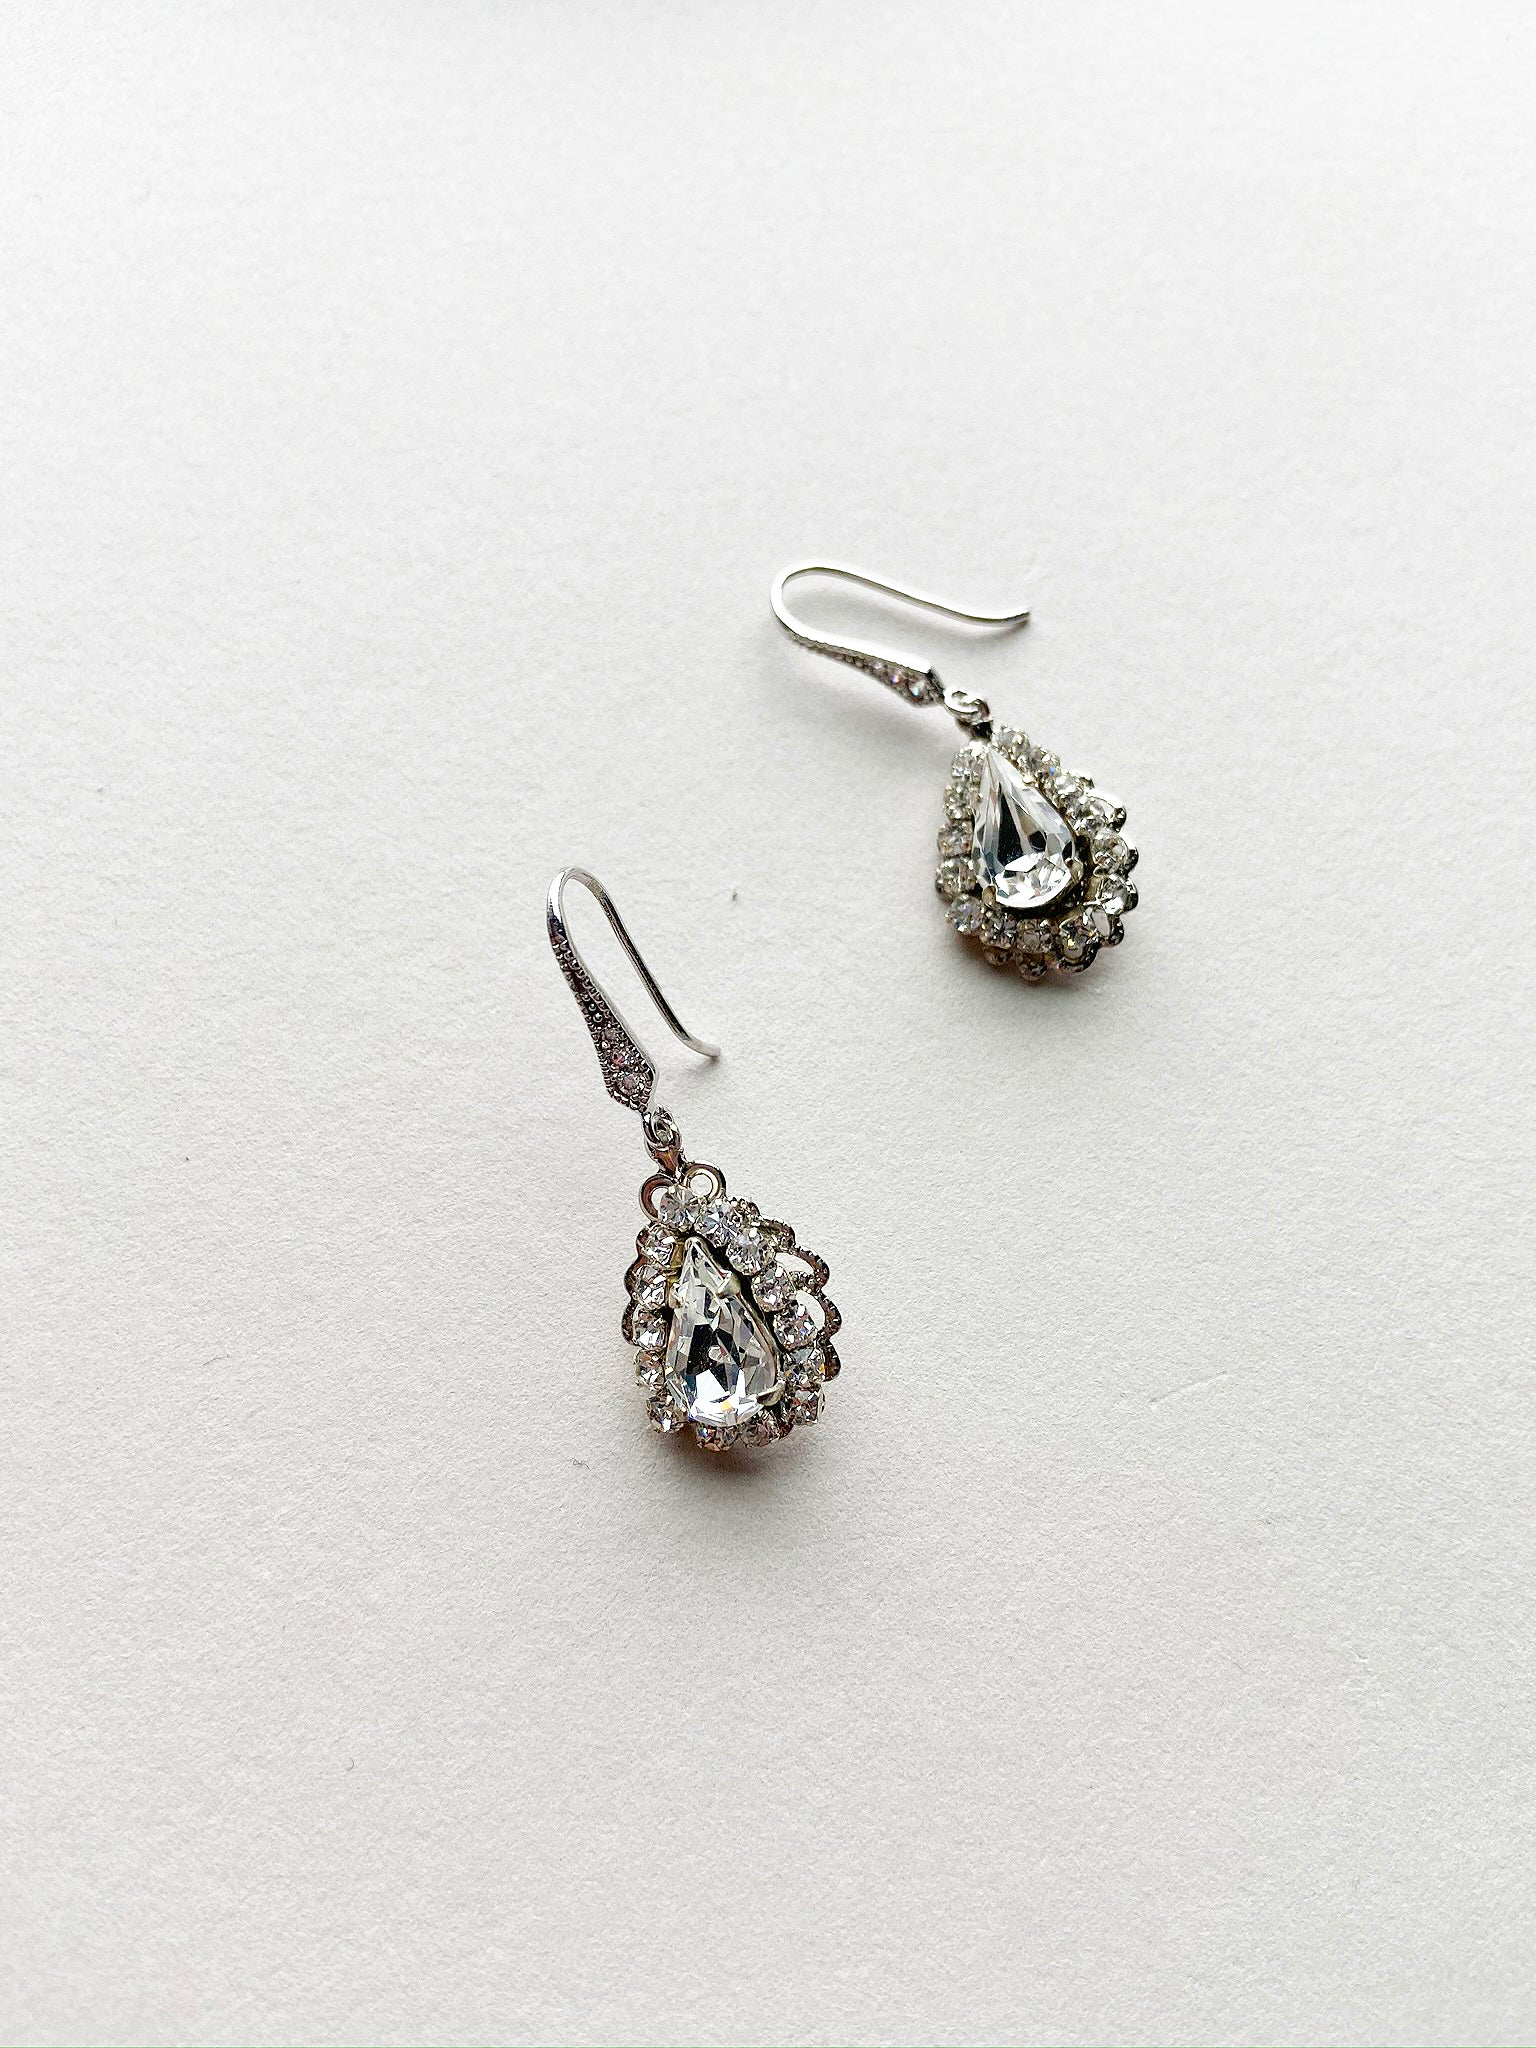 Rent Your Bridal Accessories Megan Earrings Happily Ever Borrowed